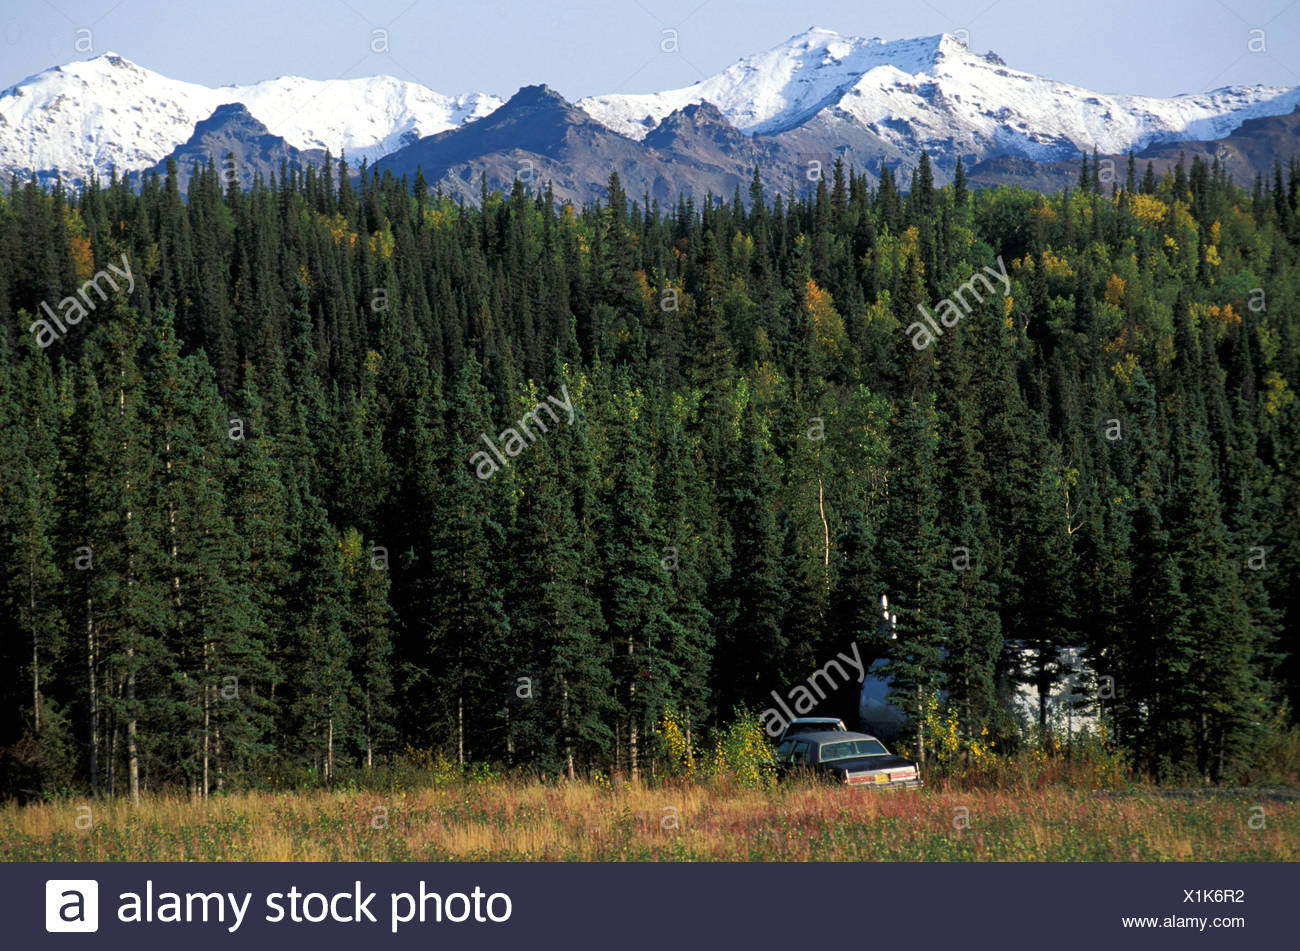 Healy, Alaska, USA, lush forest, mountain, sunny, autumn, colors, camping, camp, forest, grove - Stock Image